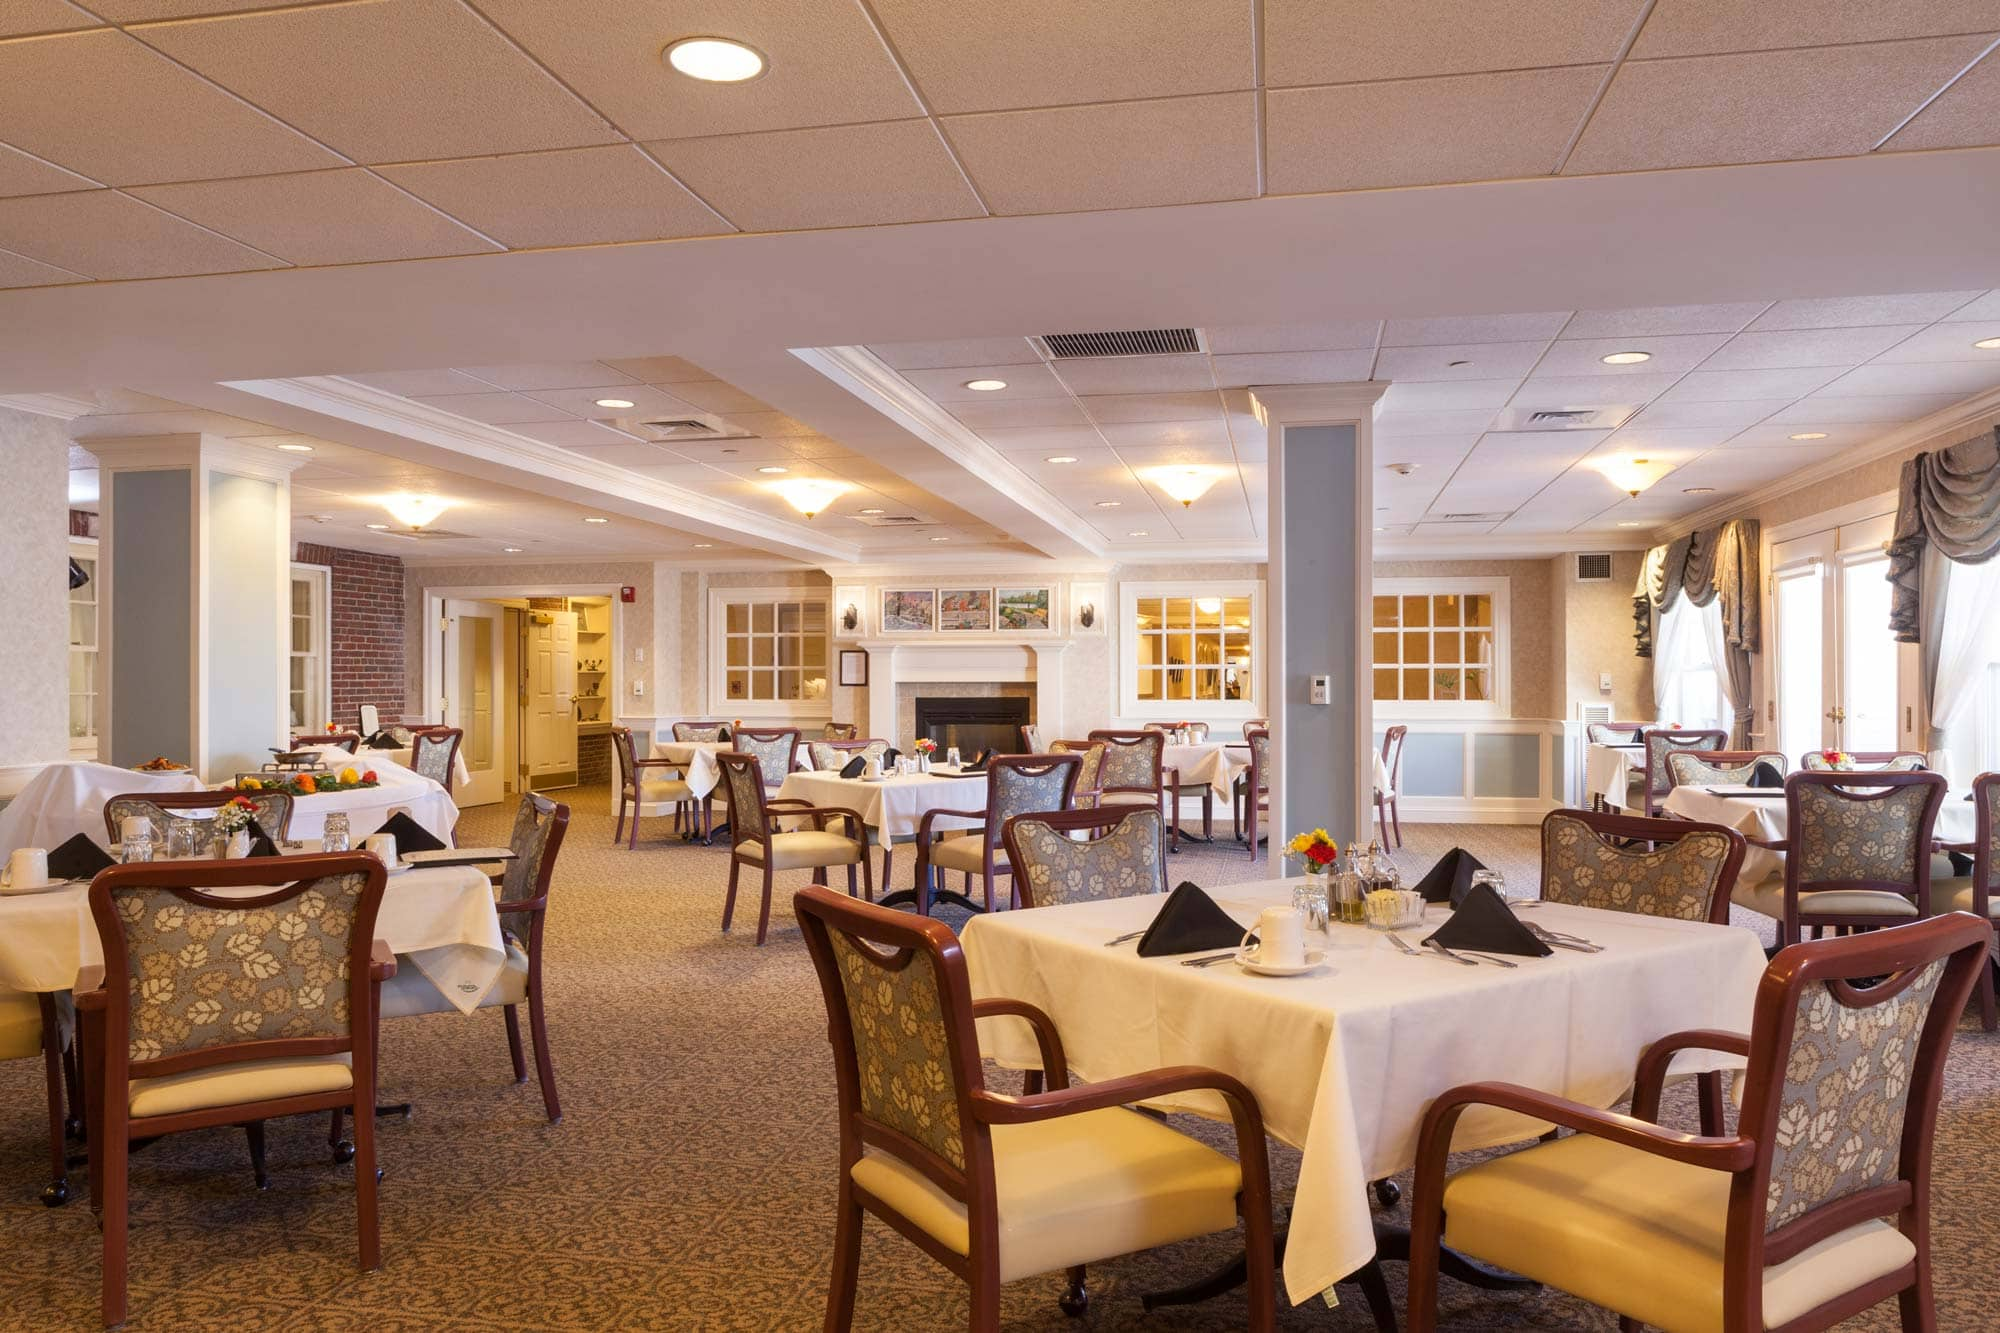 A wide view of the 4th floor dining room